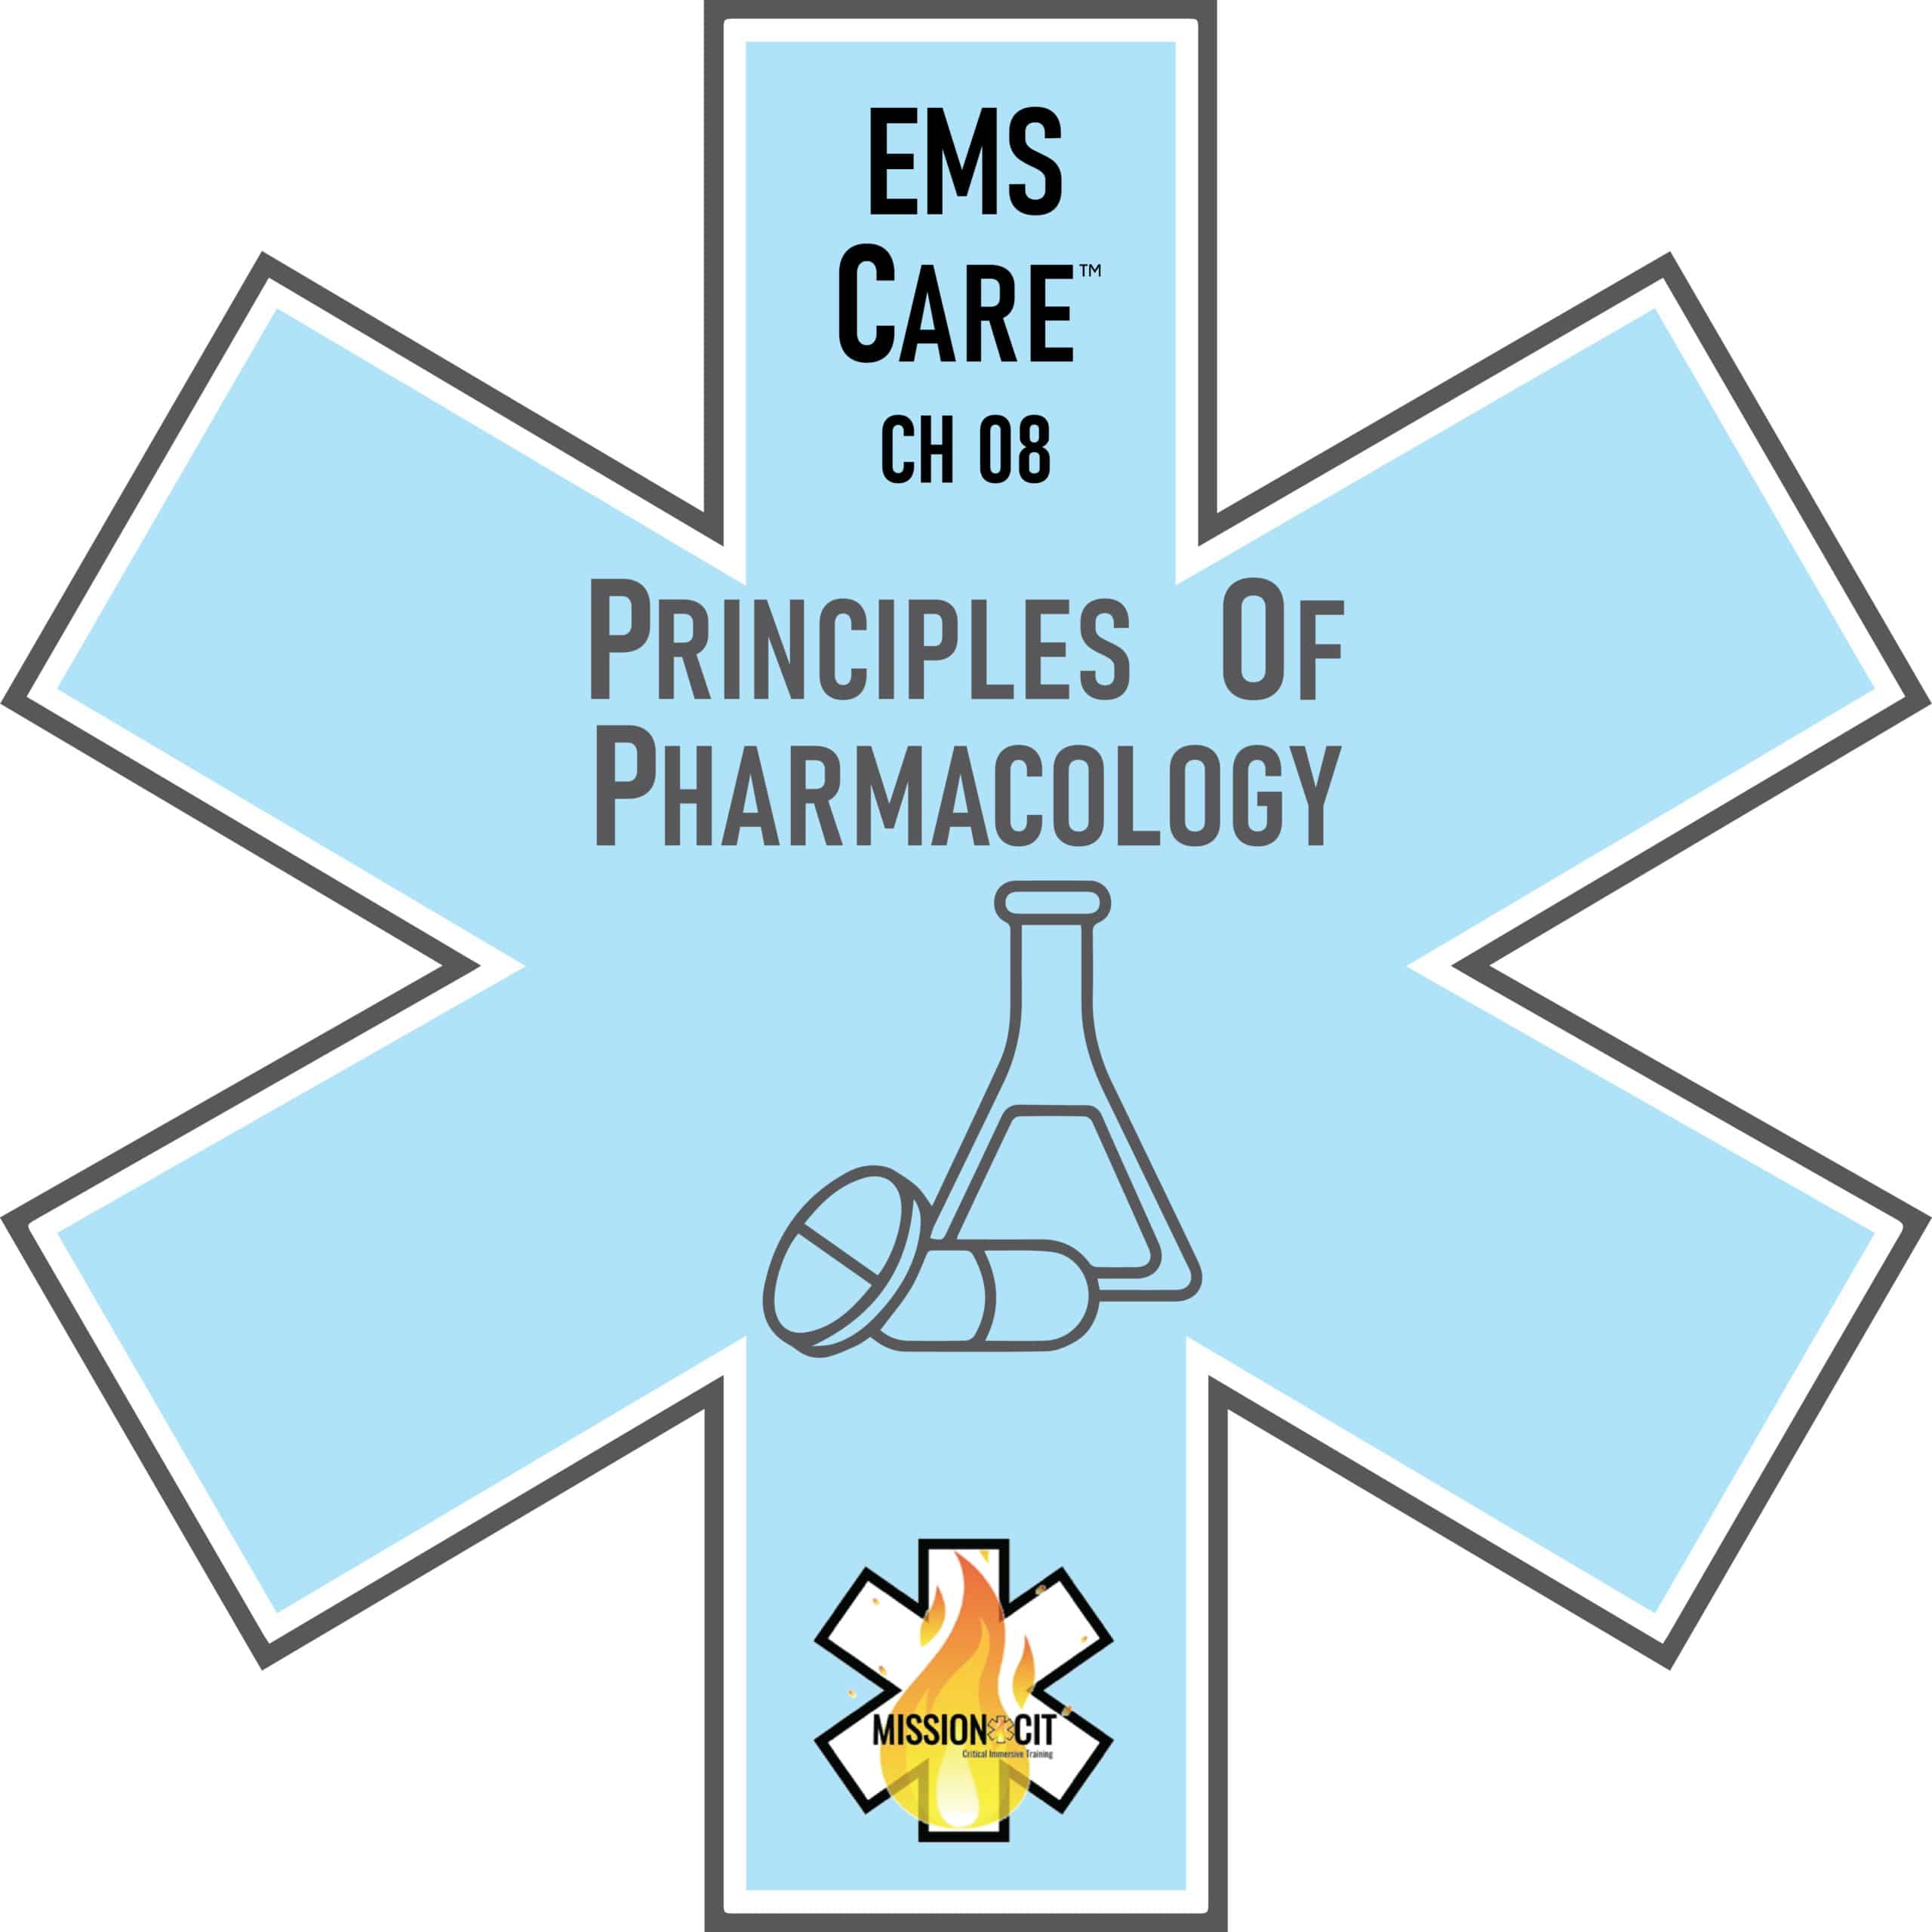 Principles of Pharmacology | EMS Care Chapter 08